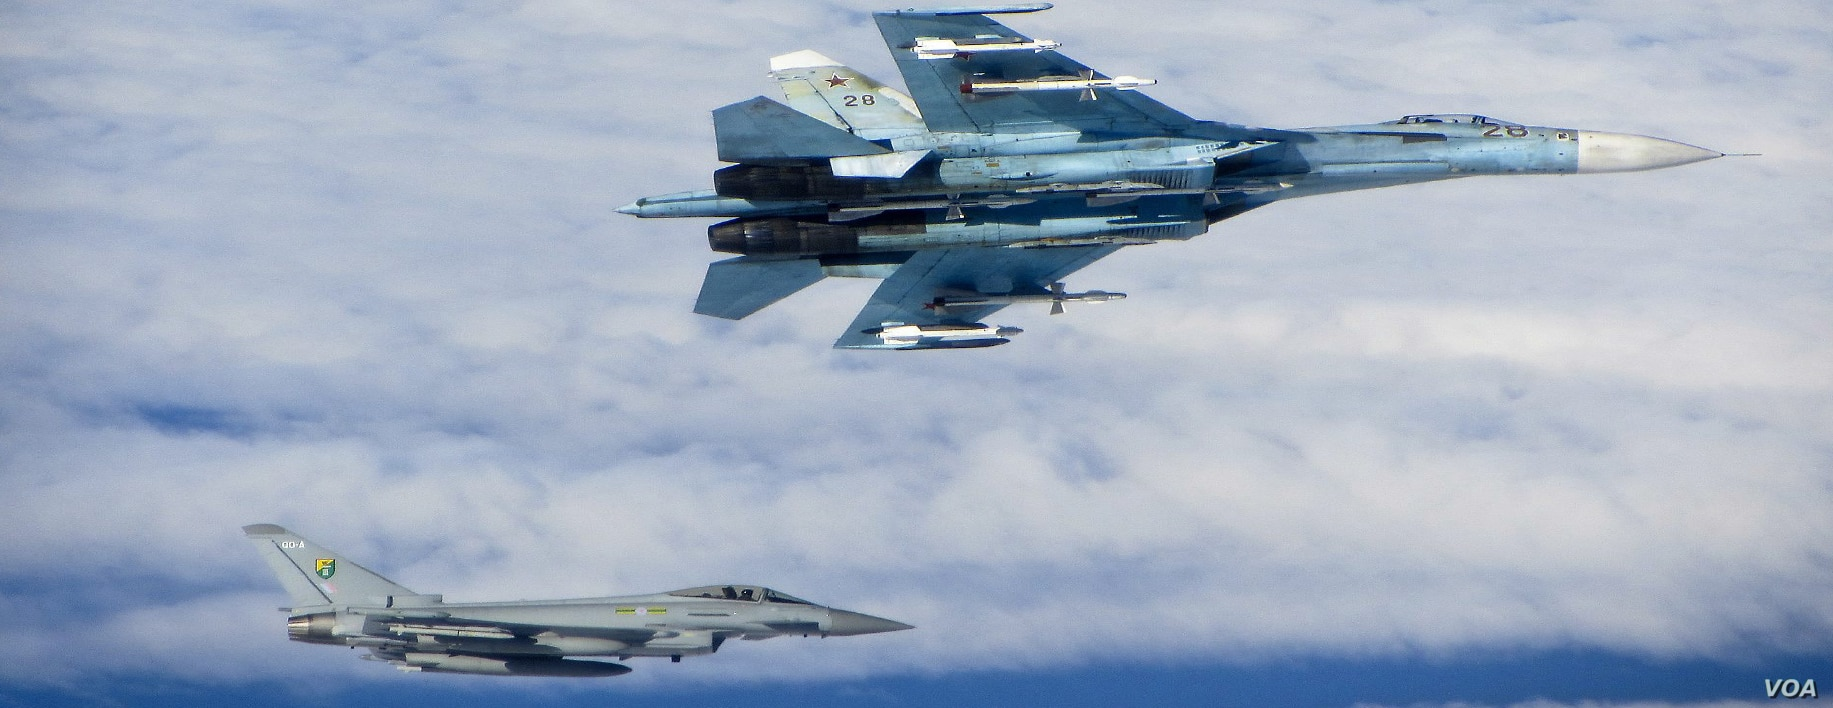 A Russian SU-27 Flanker aircraft banks away with a RAF Typhoon in the background. RAF Typhoons were scrambled on June 17 to intercept multiple Russian aircraft in international airspace as part of NATO's ongoing Baltic Air Policing Mission. (UK Minis